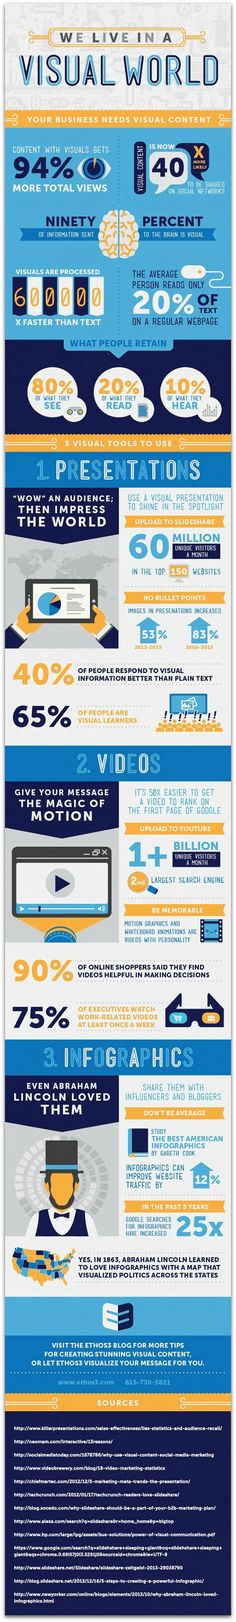 We Live In A Visual World INFOGRAPHIC  #Visualcontent